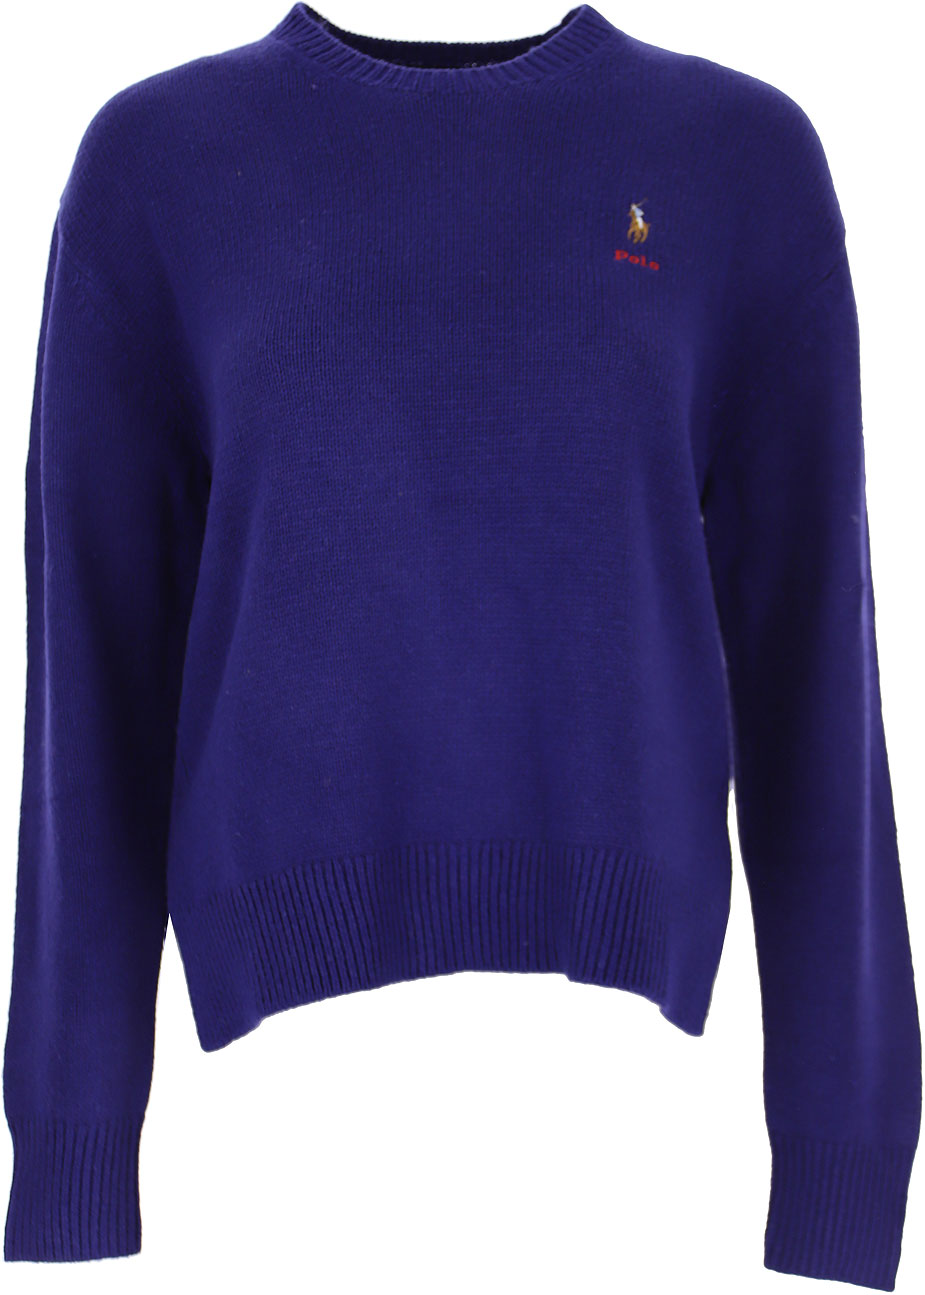 Silk blend sweater POLO RALPH LAUREN | -108764232 | 211780402001